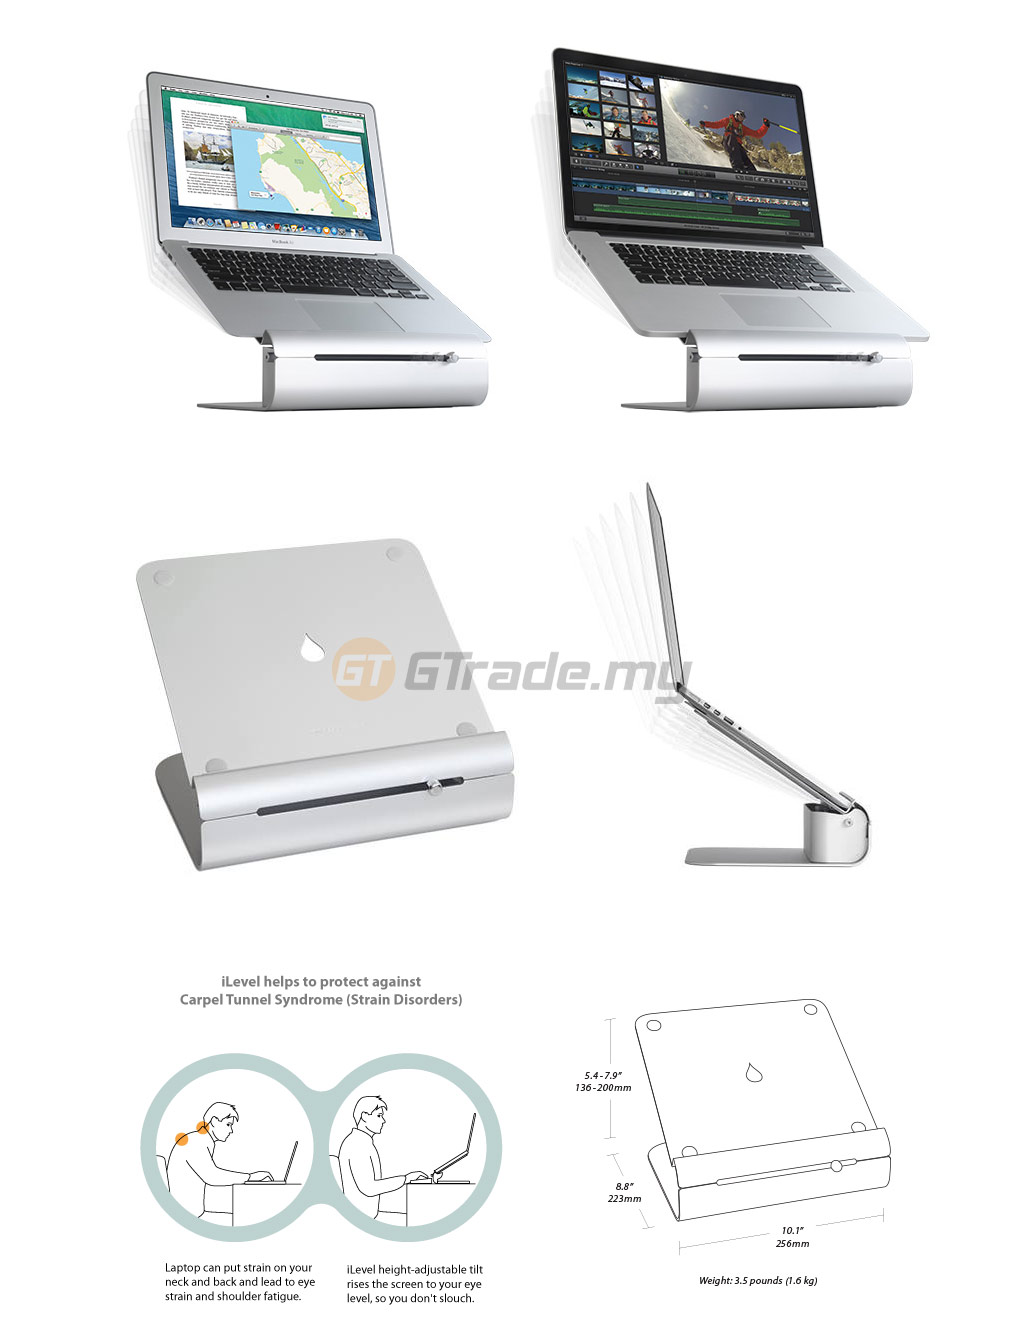 raindesign-ilevel2-laptop-notebook-stand-macbook-air-pro-asus-dell-lenovo-acer-hp-fujitsu-p